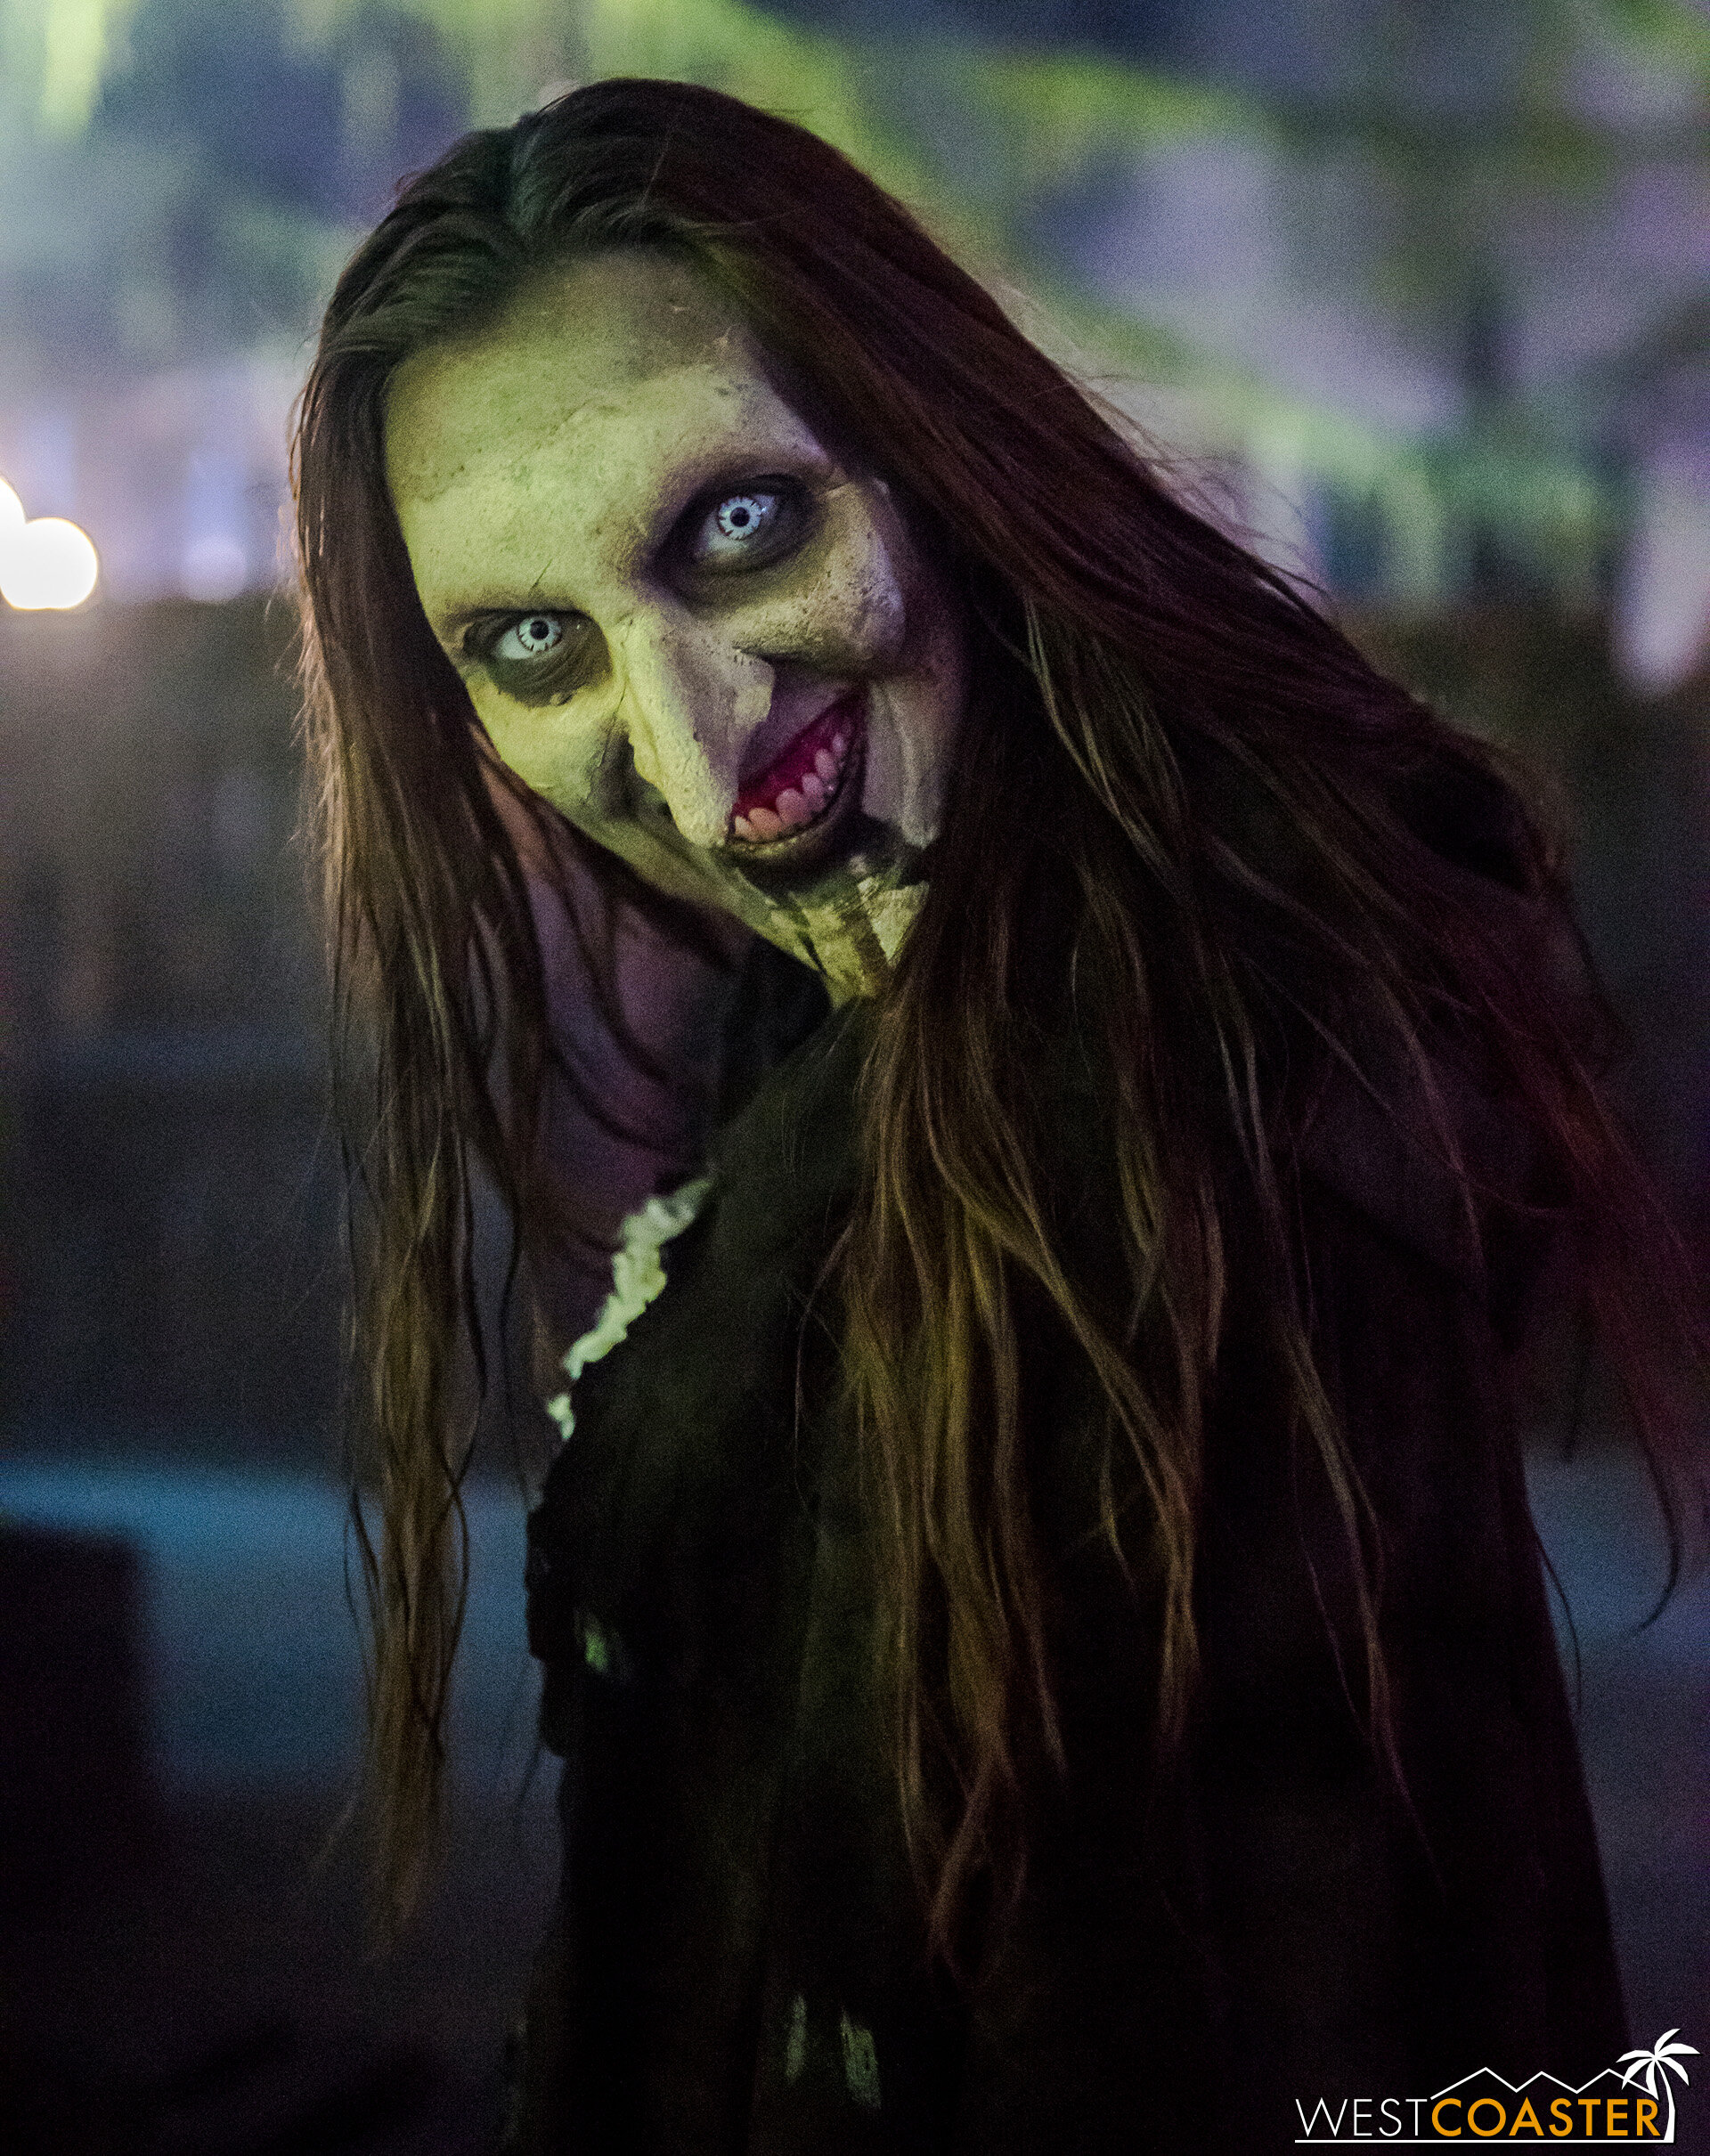 A hag flashes a sinister smile before retreating off into the shadows to claim more victims.